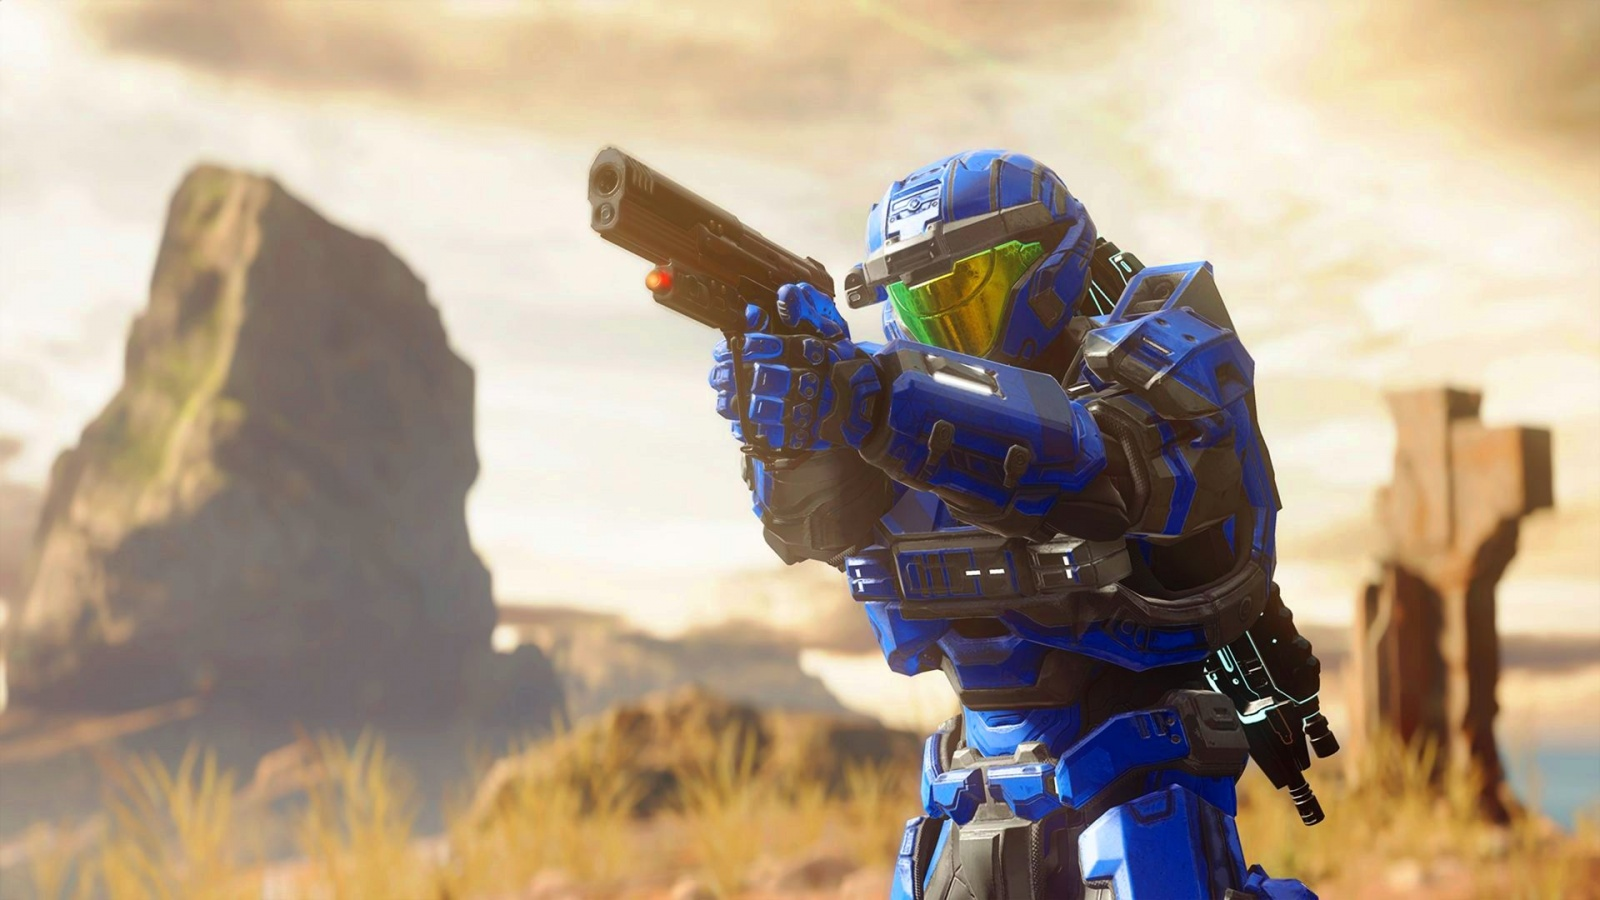 Halo 5 Forge